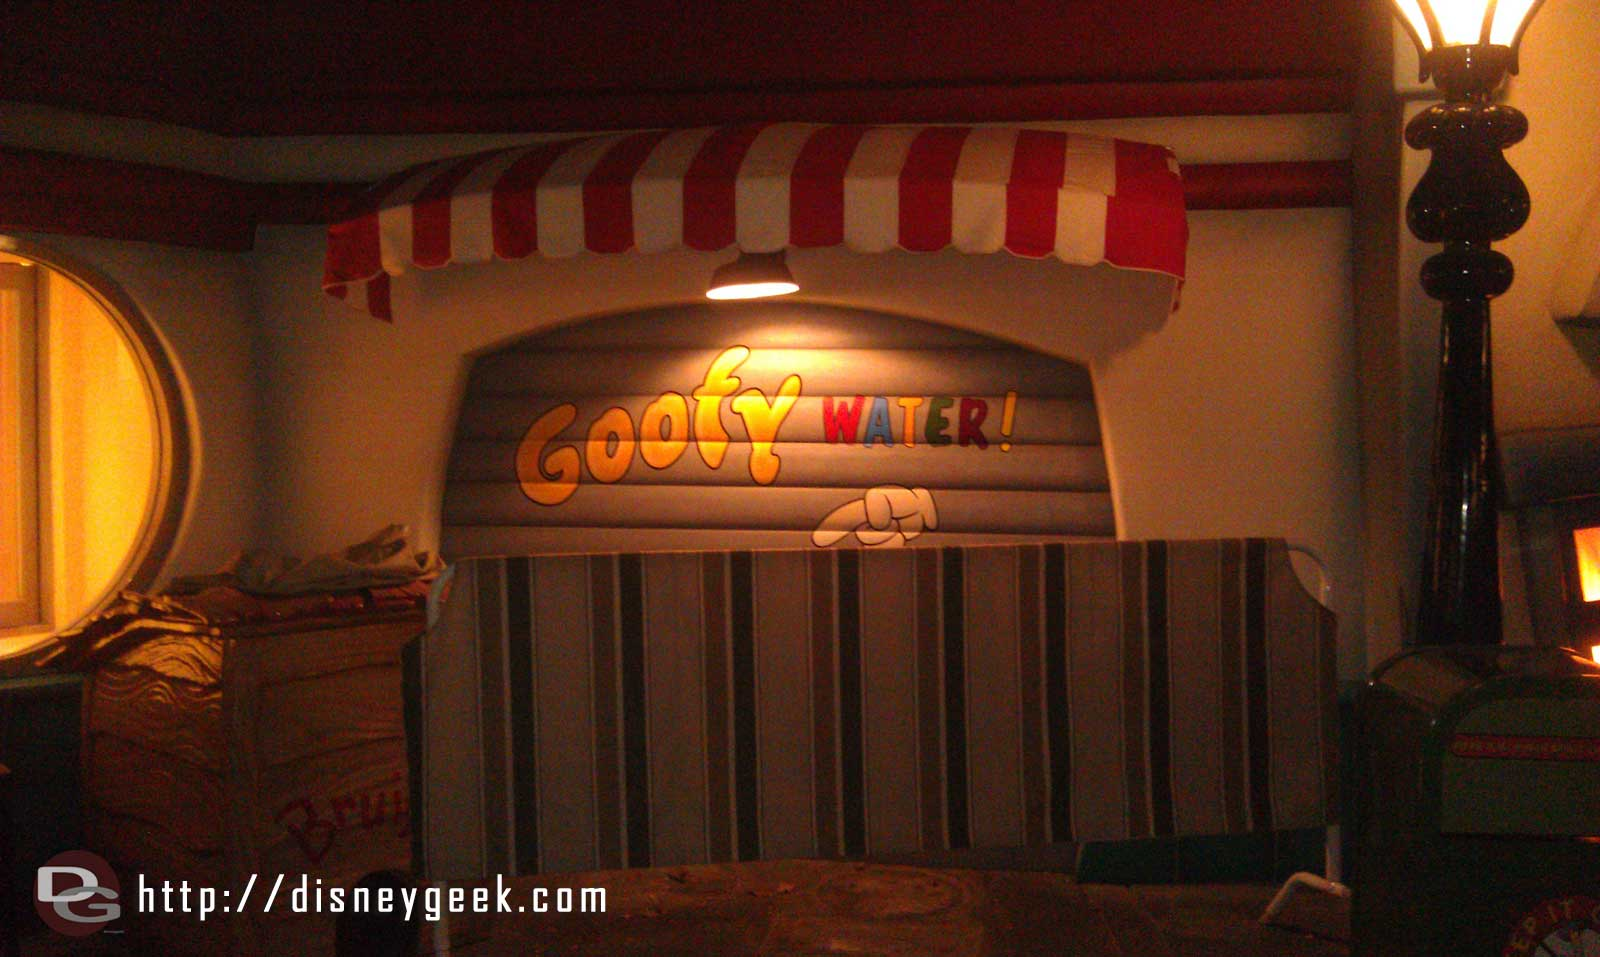 Goofys Gas in Toontown is out from behind scaffolding, but still working on the Goofy Water.